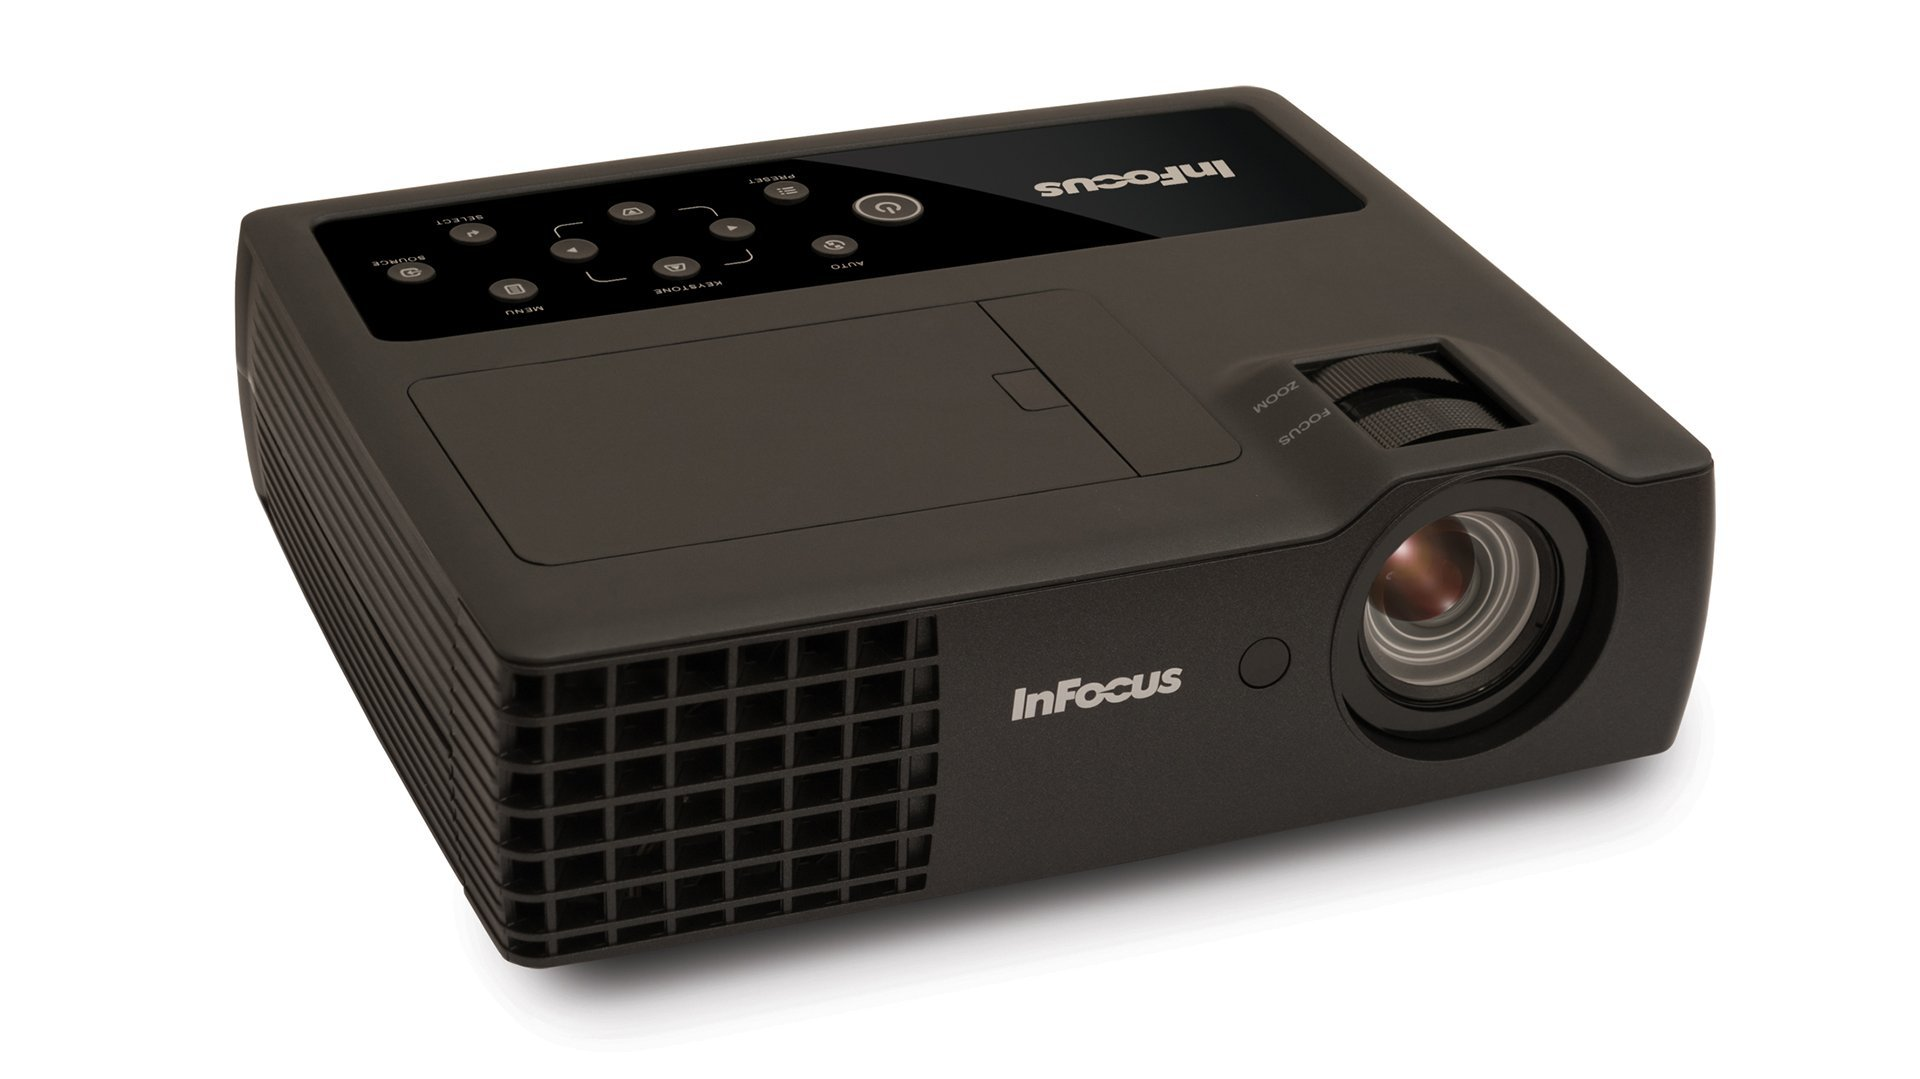 InFocus Corporation IN1118HD 1080p DLP Mobile Projector, HDMI, 3.5 lbs, 4GB Storage, 2400 Lumens